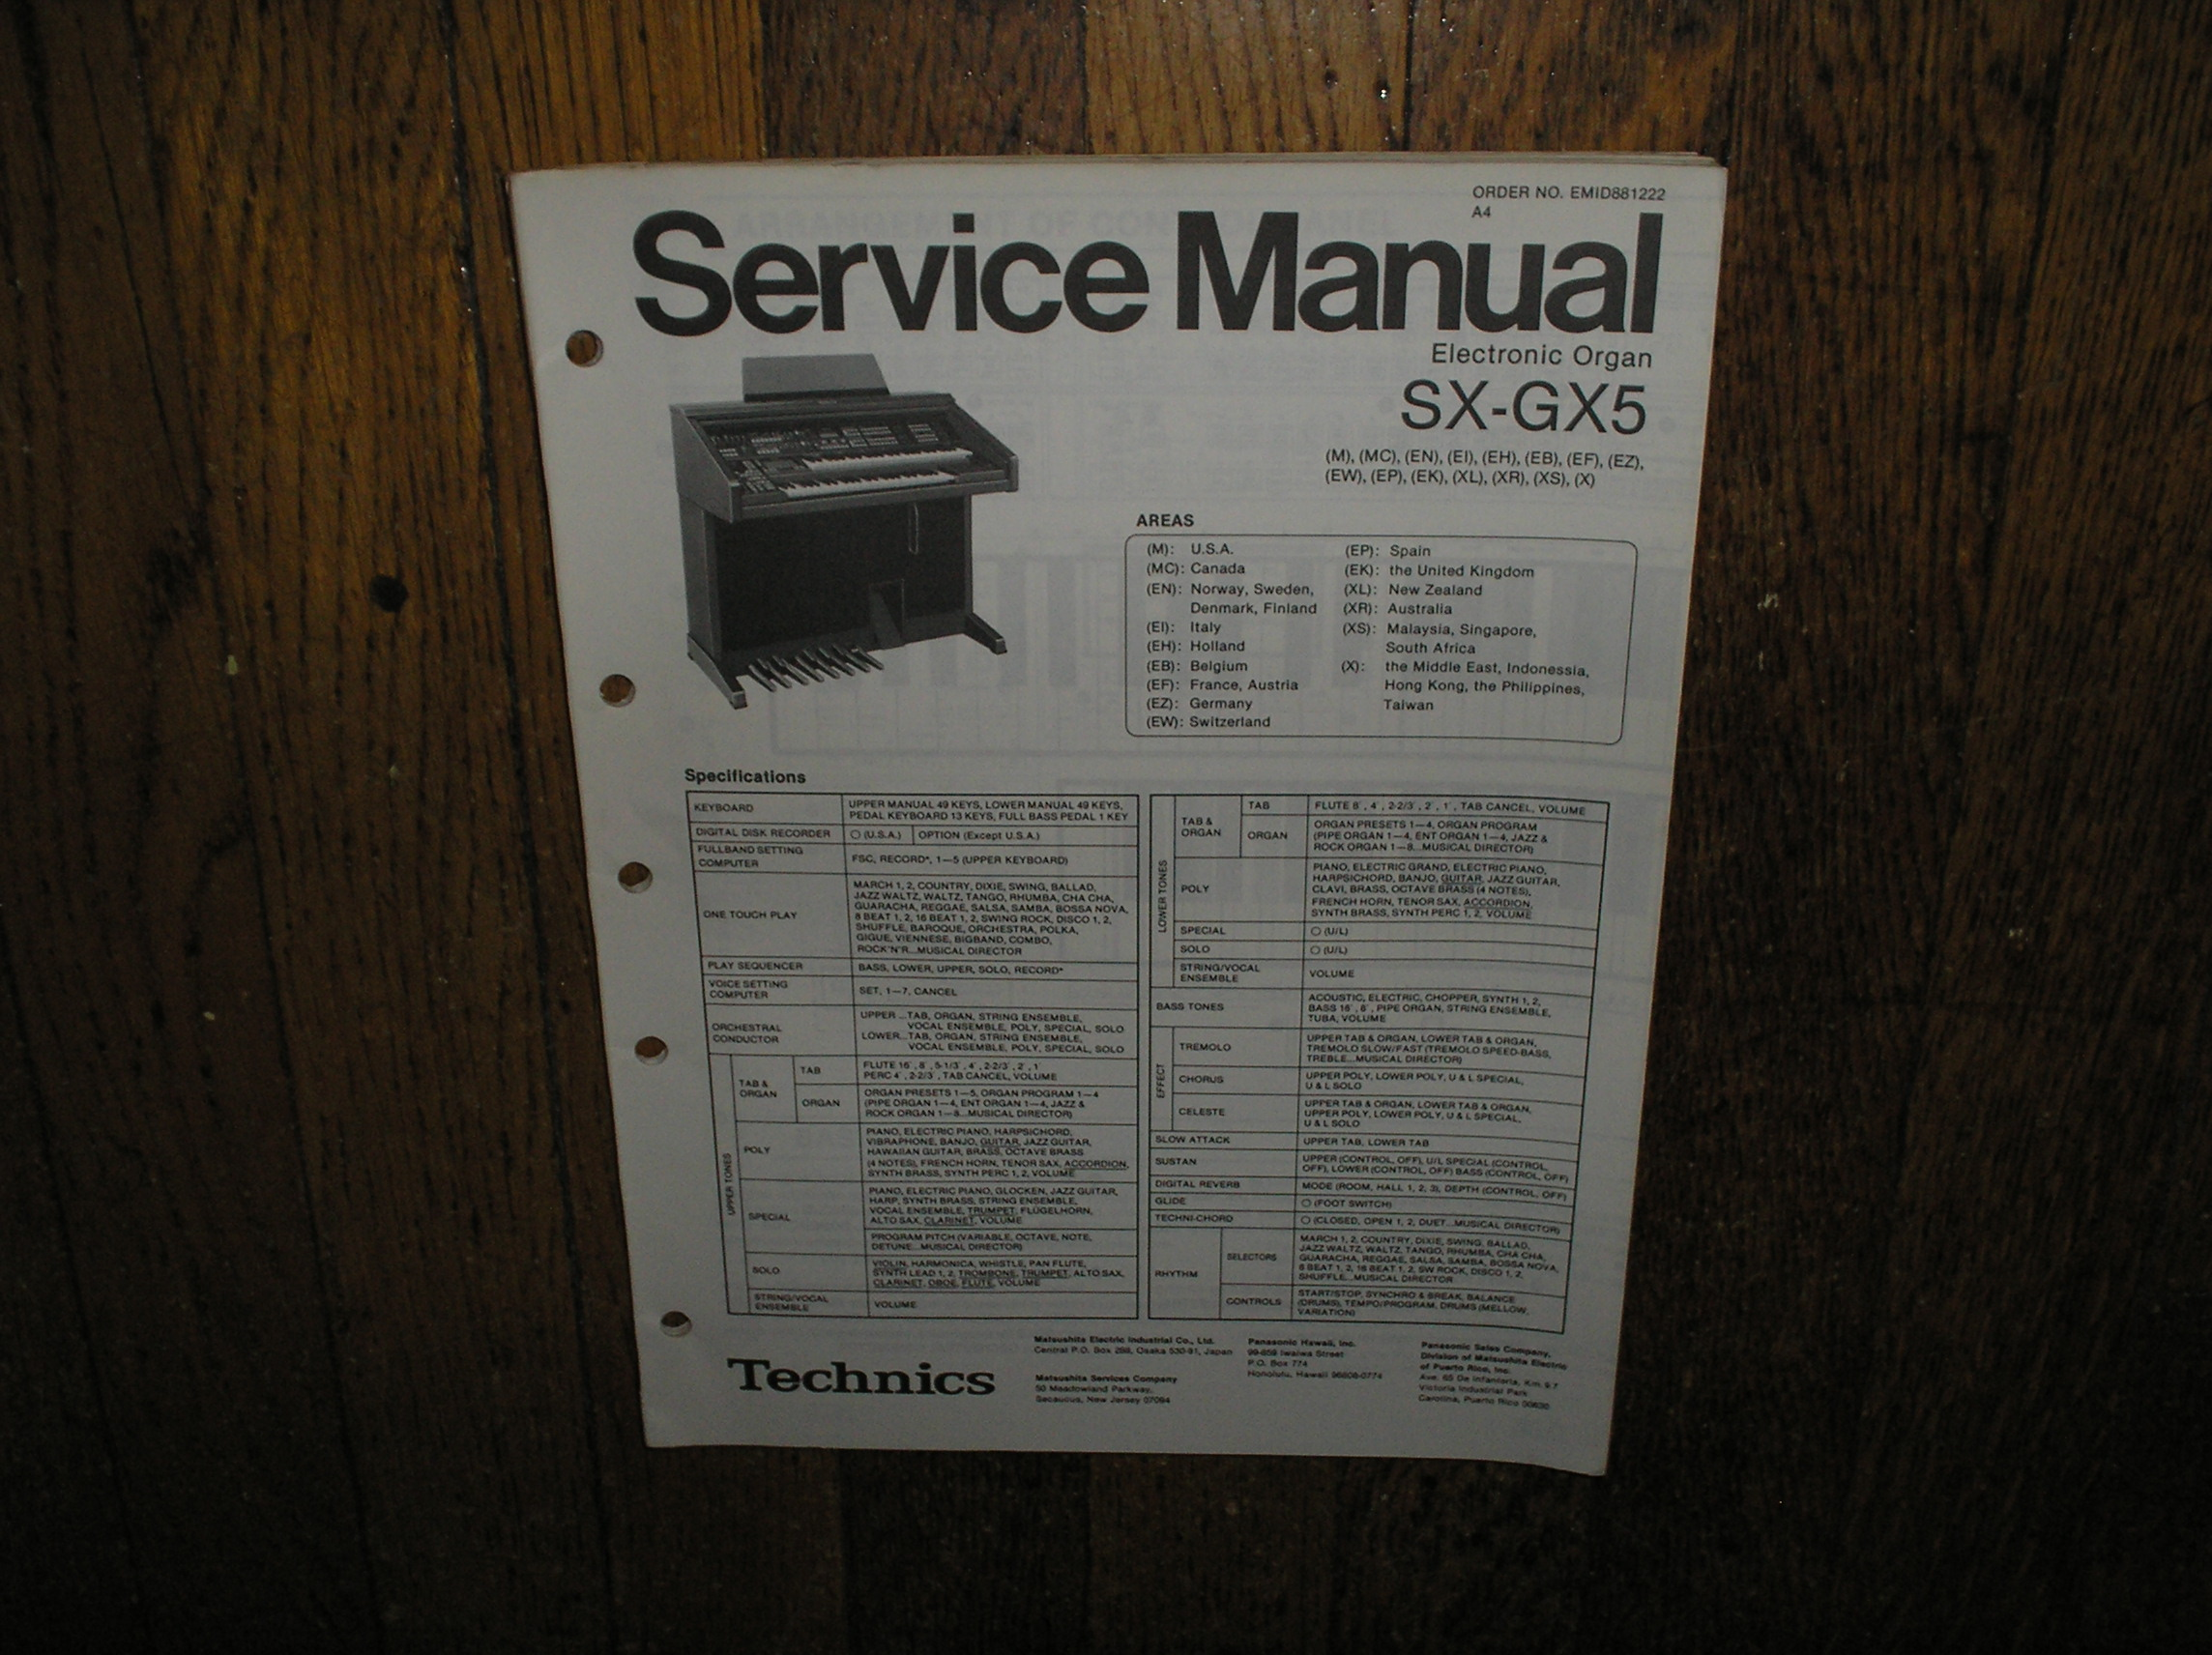 SX-GX5 Electric Organ Service Manual